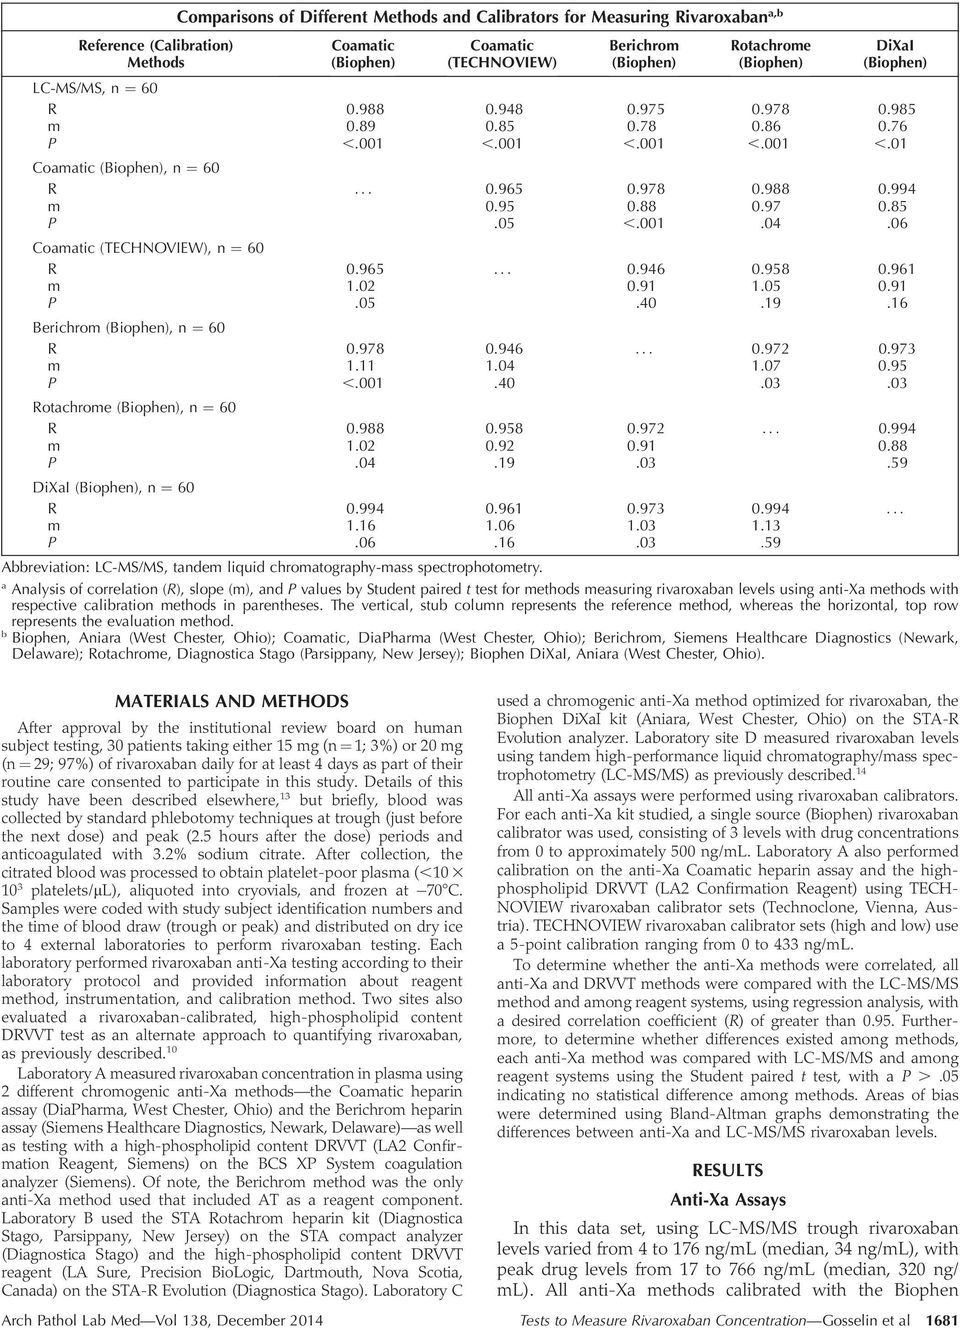 Details of this study have been described elsewhere, 13 but briefly, blood was collected by standard phlebotomy techniques at trough (just before the next dose) and peak (2.